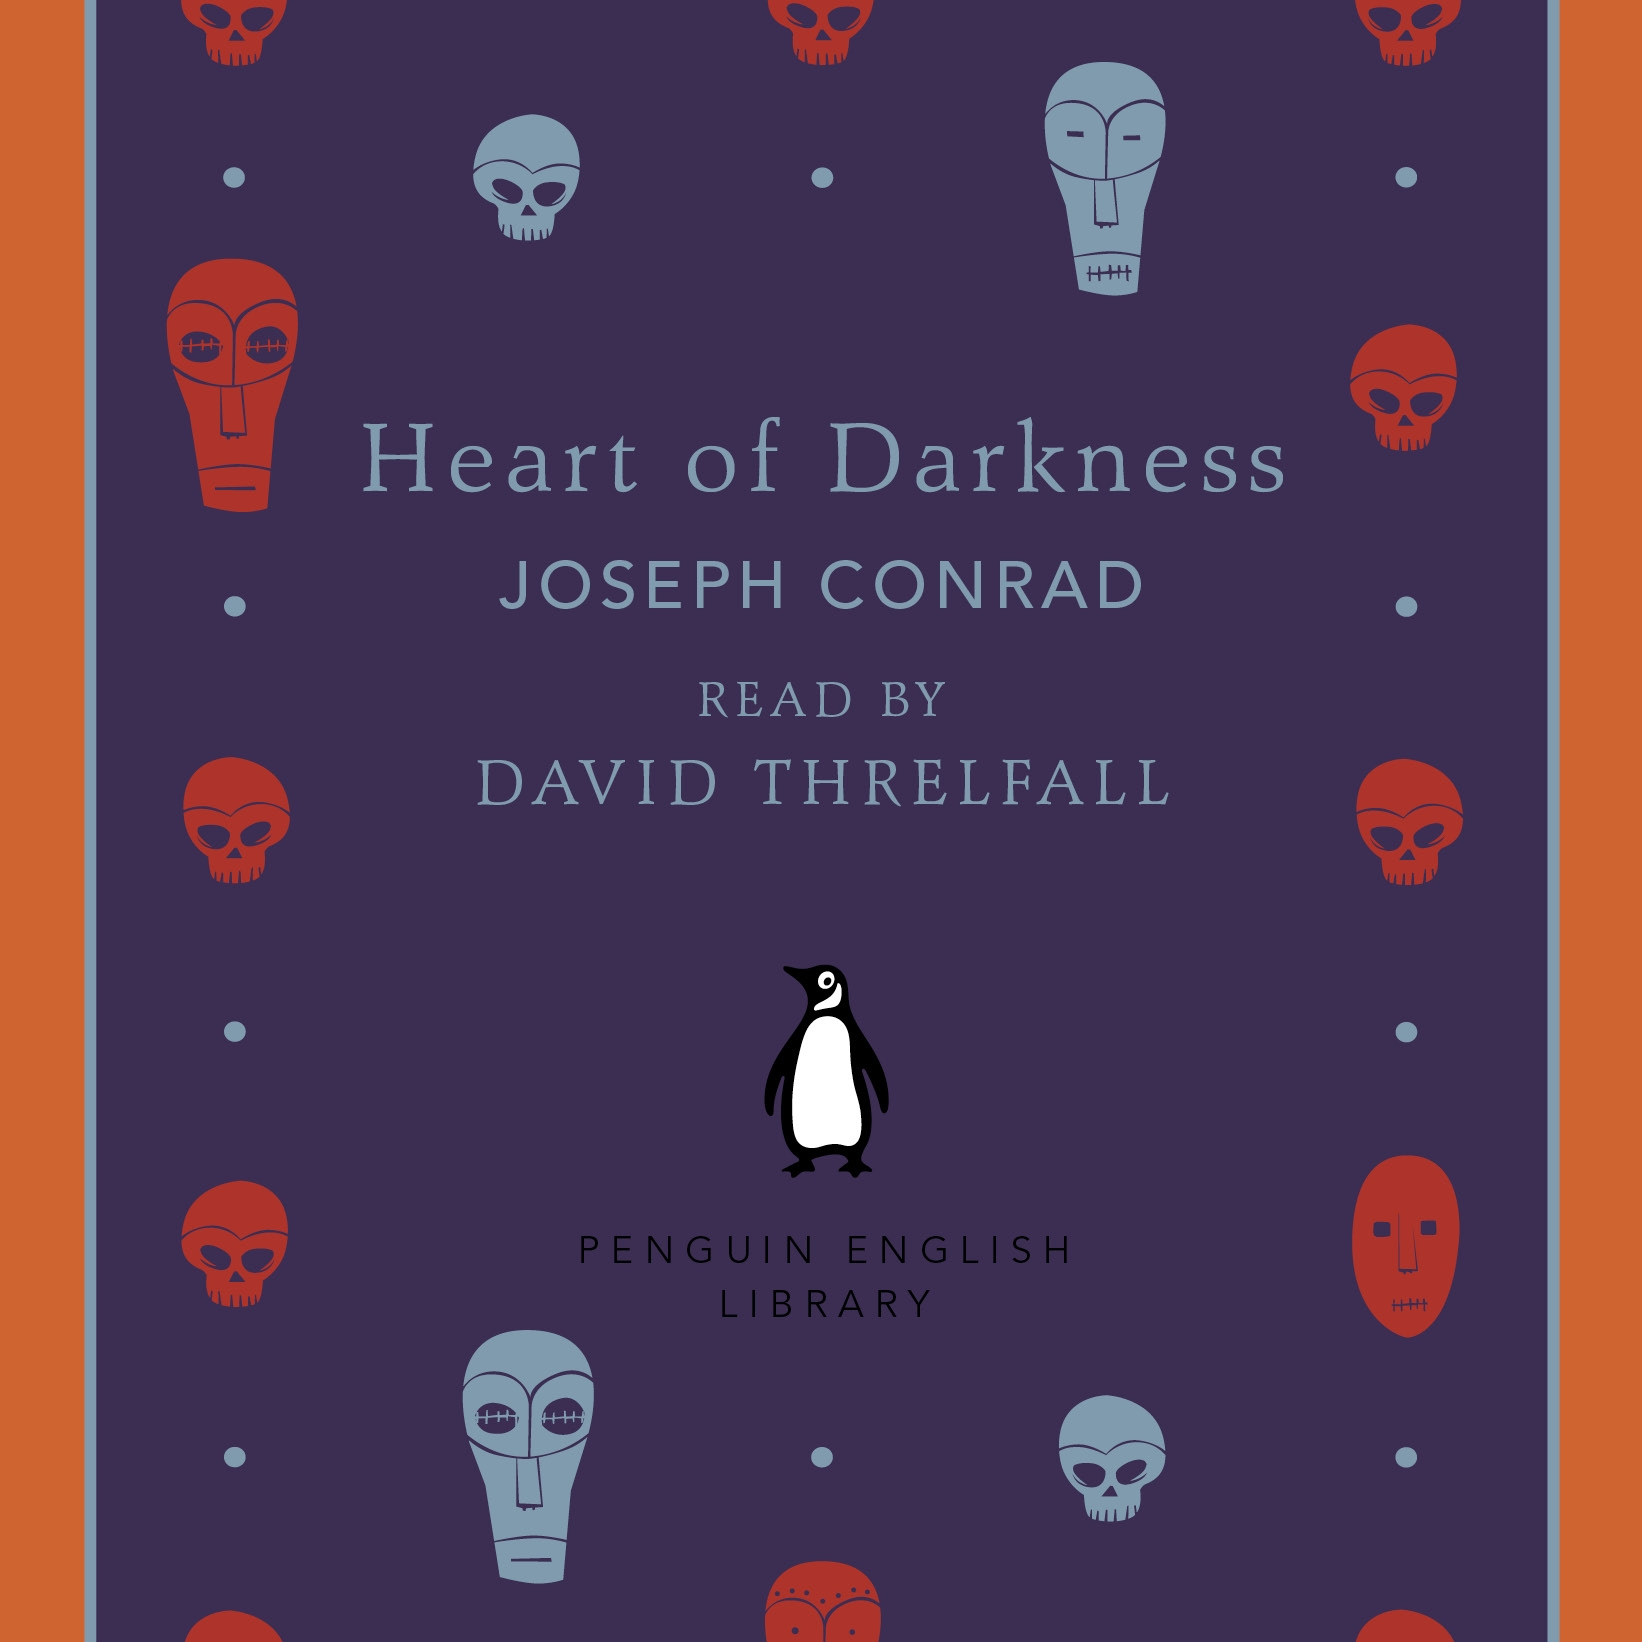 a glimpse at the role of women in heart of darkness by joseph conrad I would agree that conrad in heart of darkness is misogynistic, but only up to a certain point misogyny is the marginalization or disparagement of women in some way certainly, the world of trade.